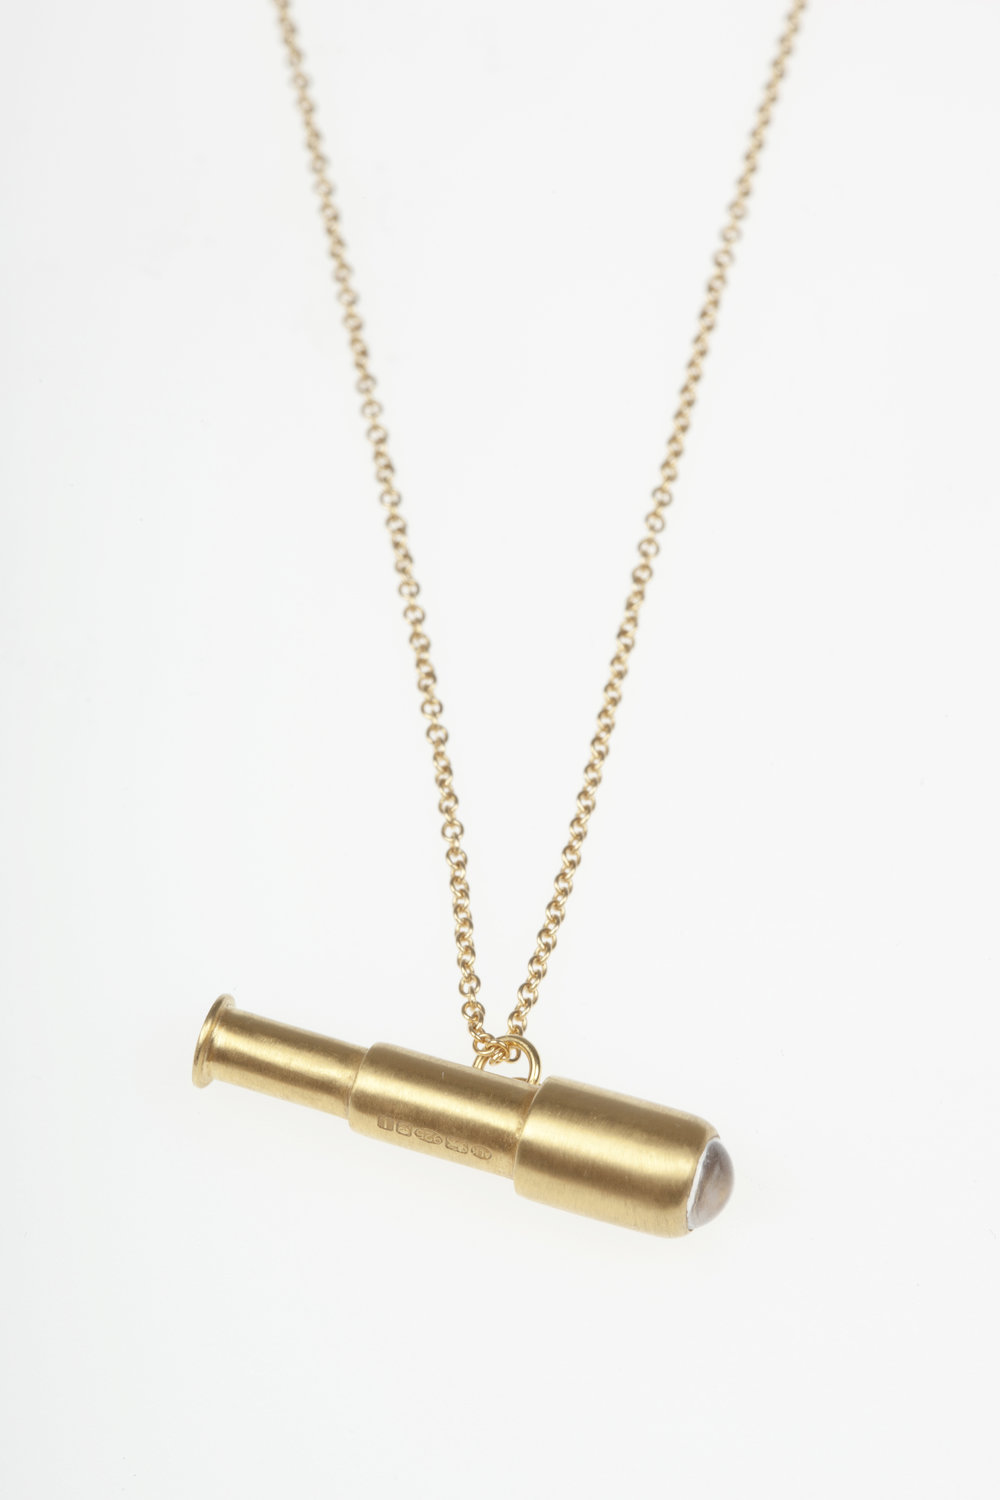 Spyglass Pendant  18ct Gold Vermeil and Black Rhodium Plated Sterling Silver, Rock Crystal  £218